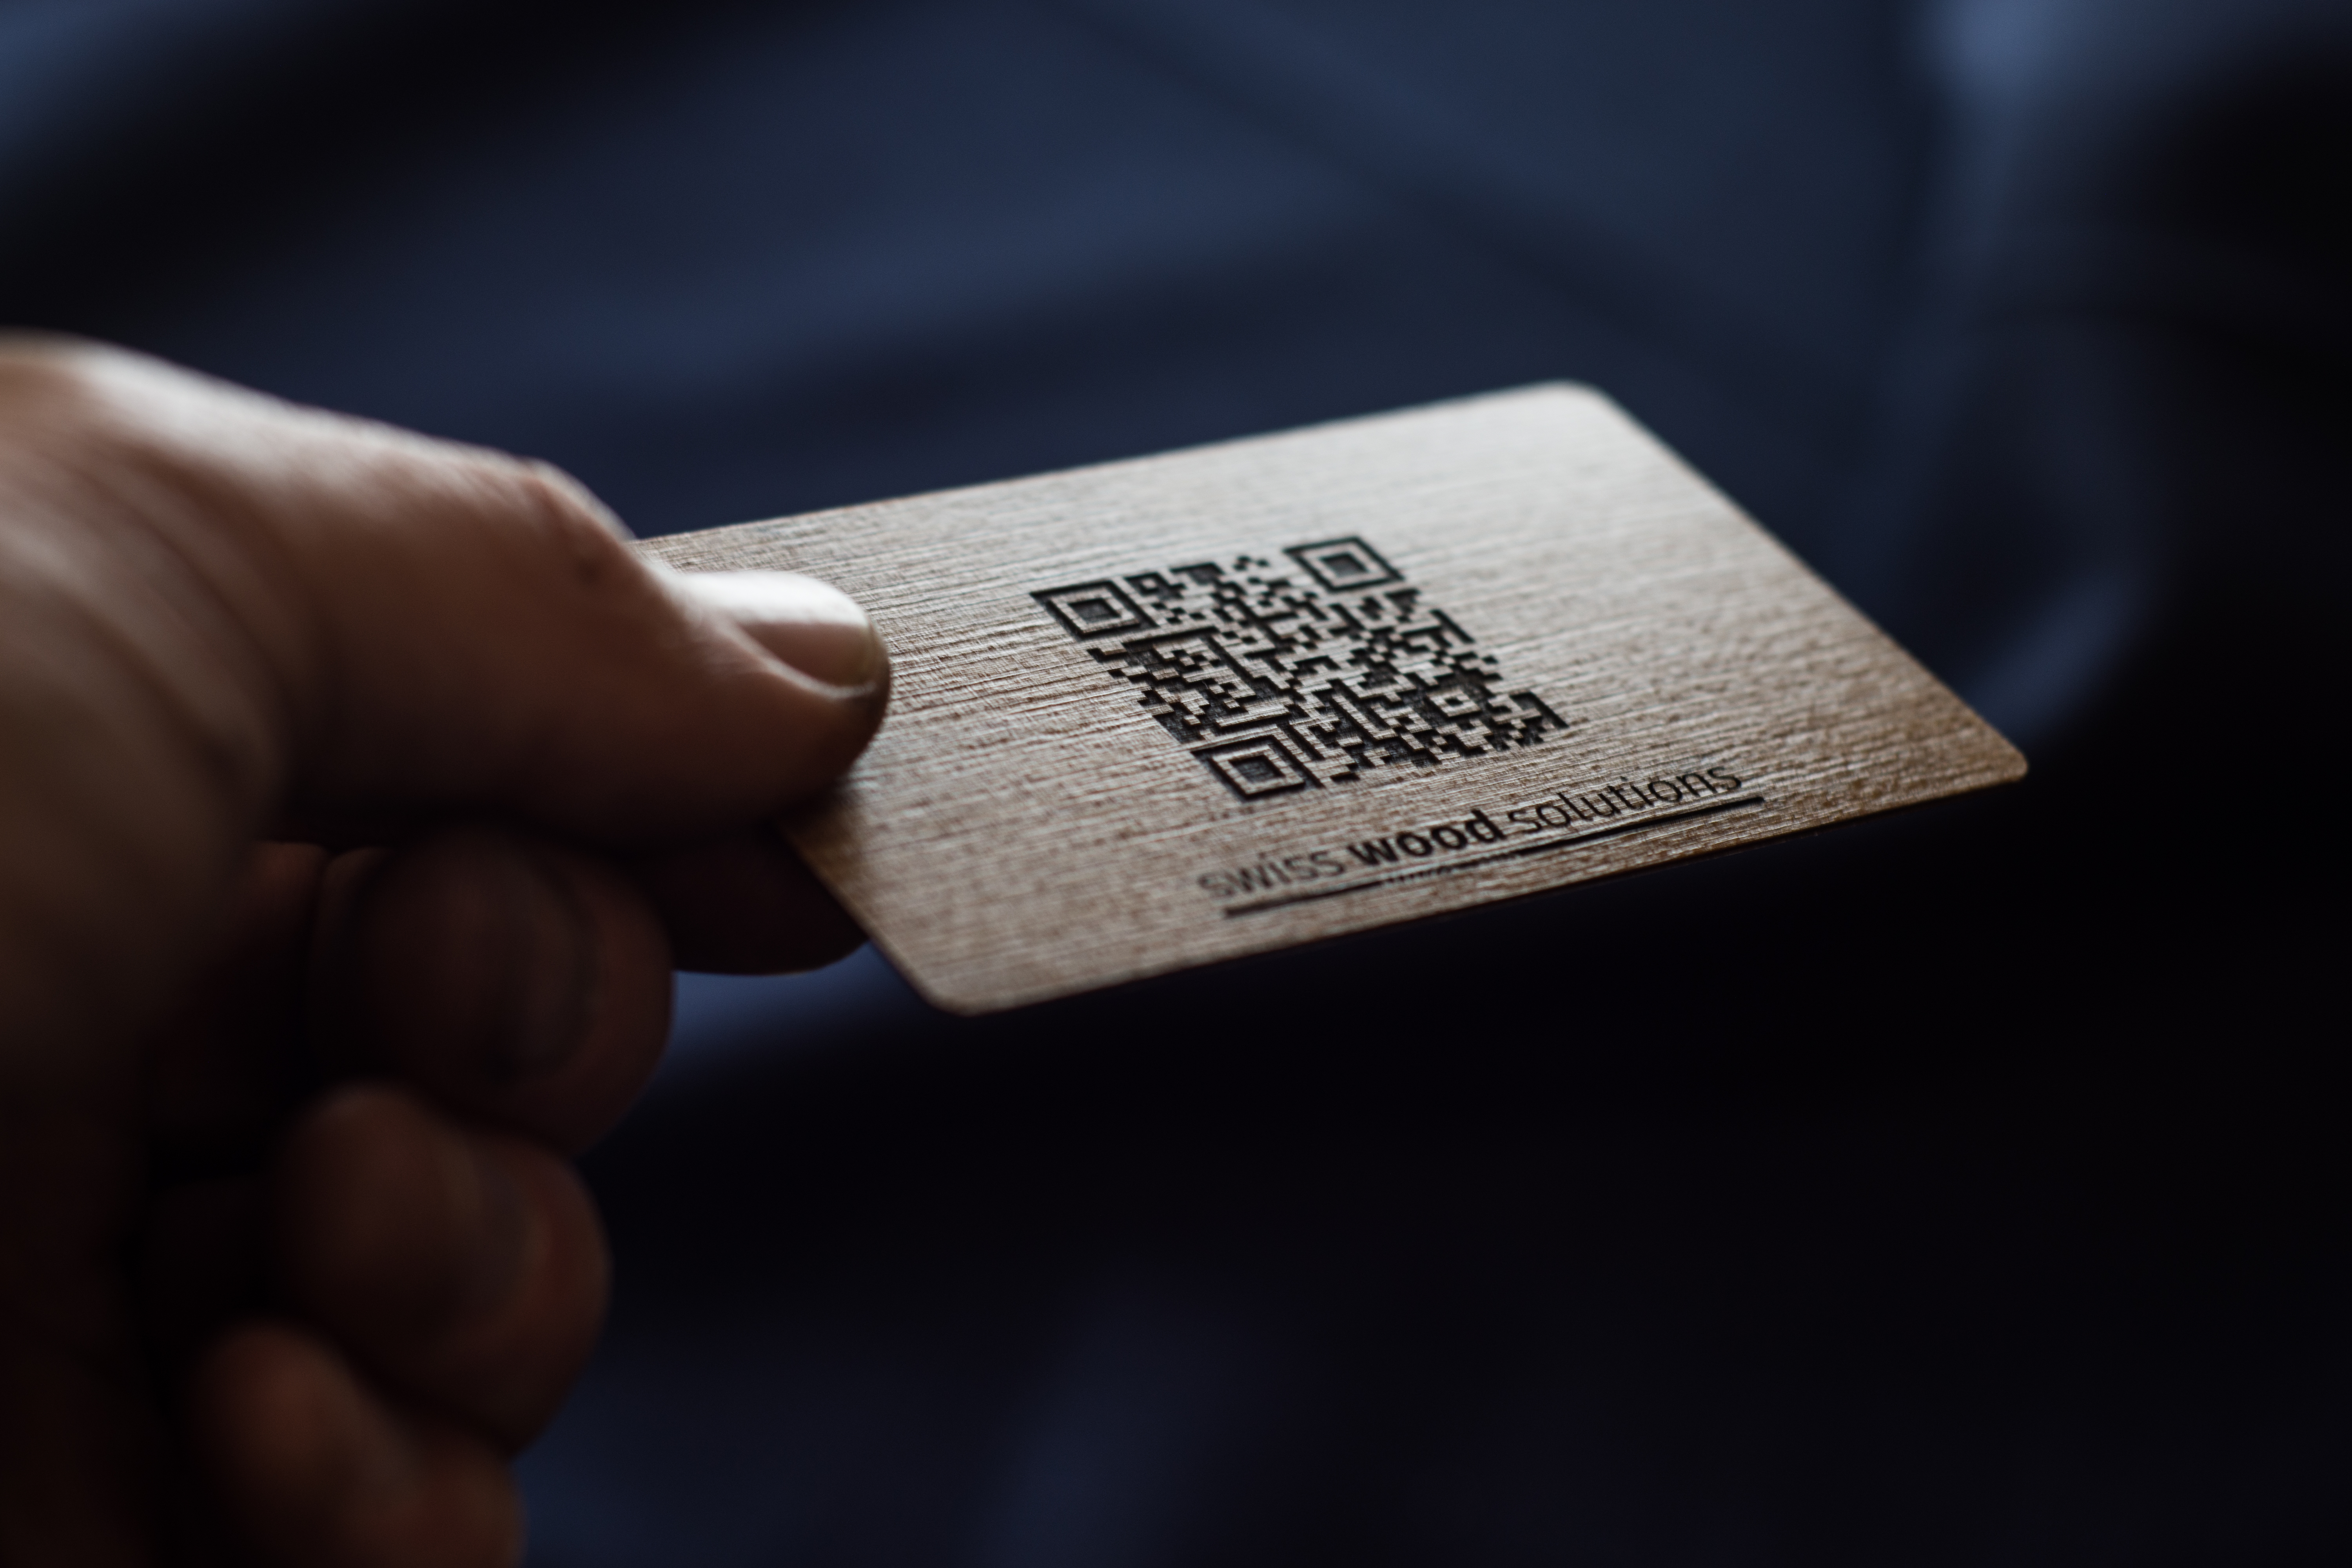 Swiss Wood Solutions business card with QR code from maple wood